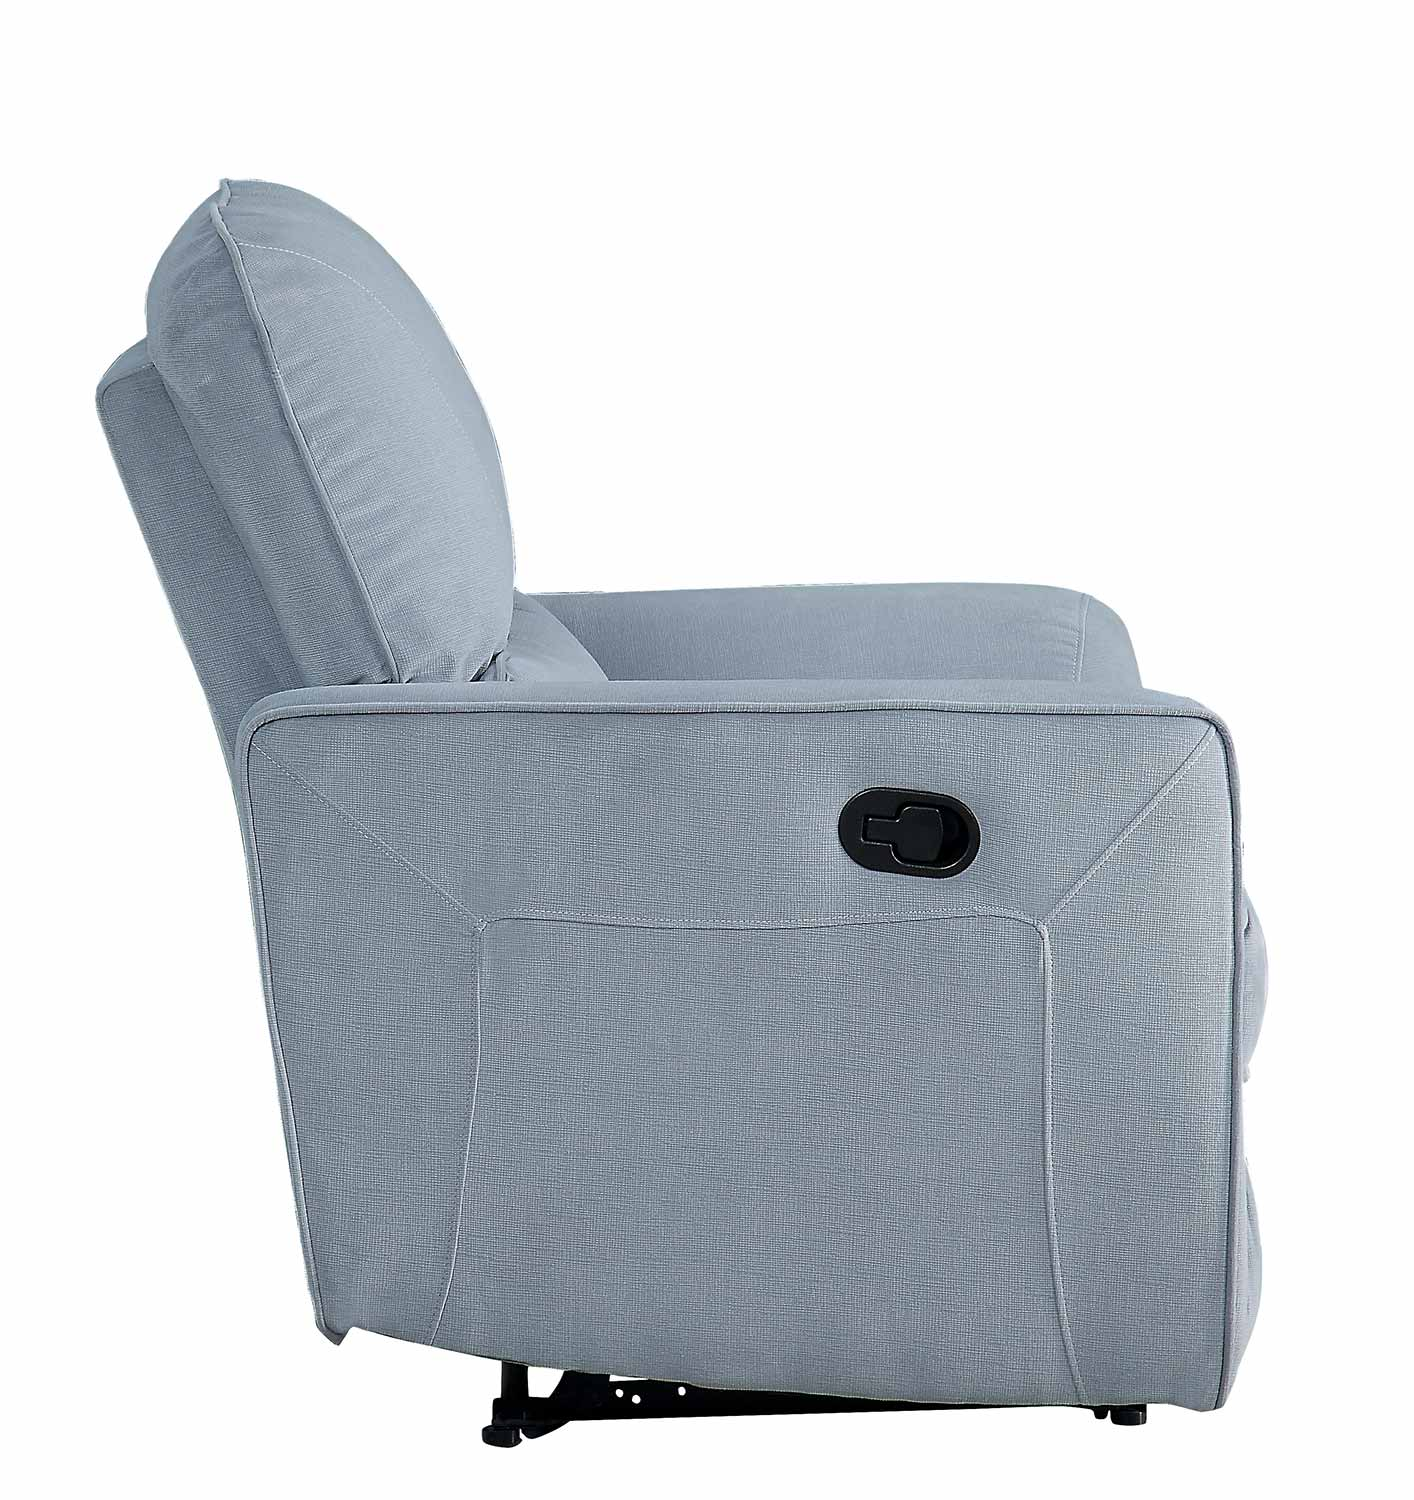 Homelegance Dowling Reclining Chair - Light Gray